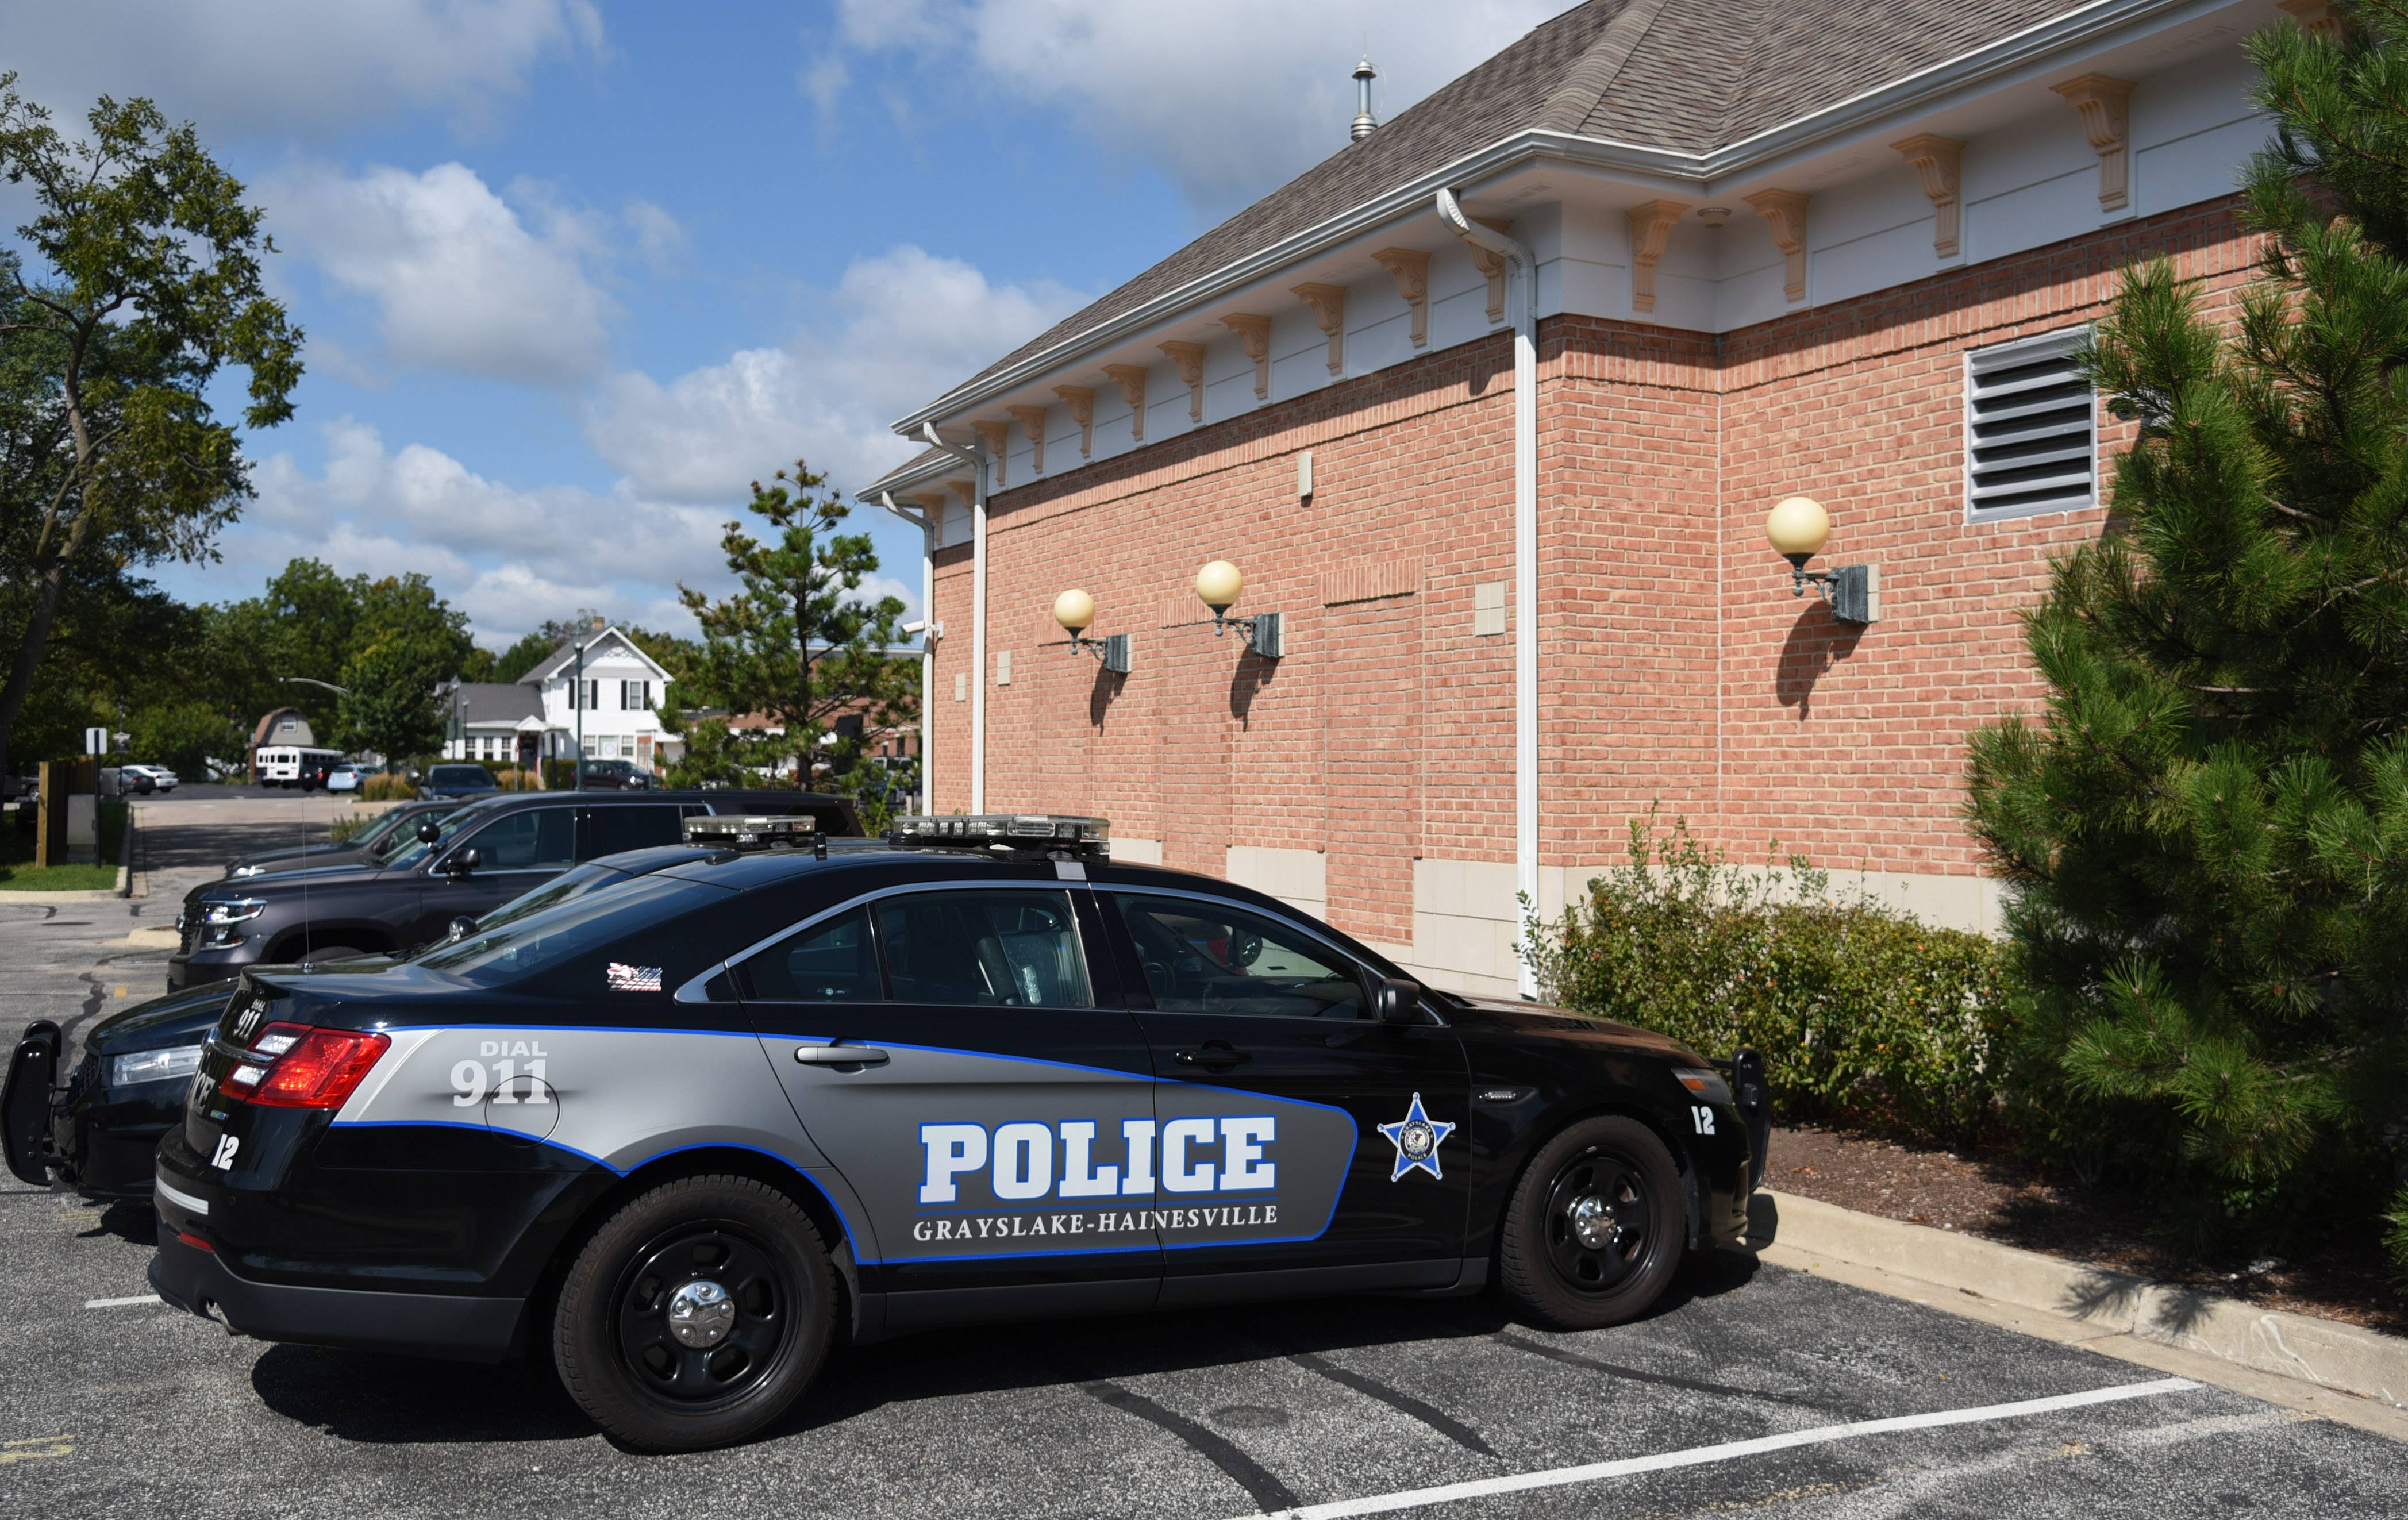 The police agreement between Grayslake and Hainesville will continue until 2025.